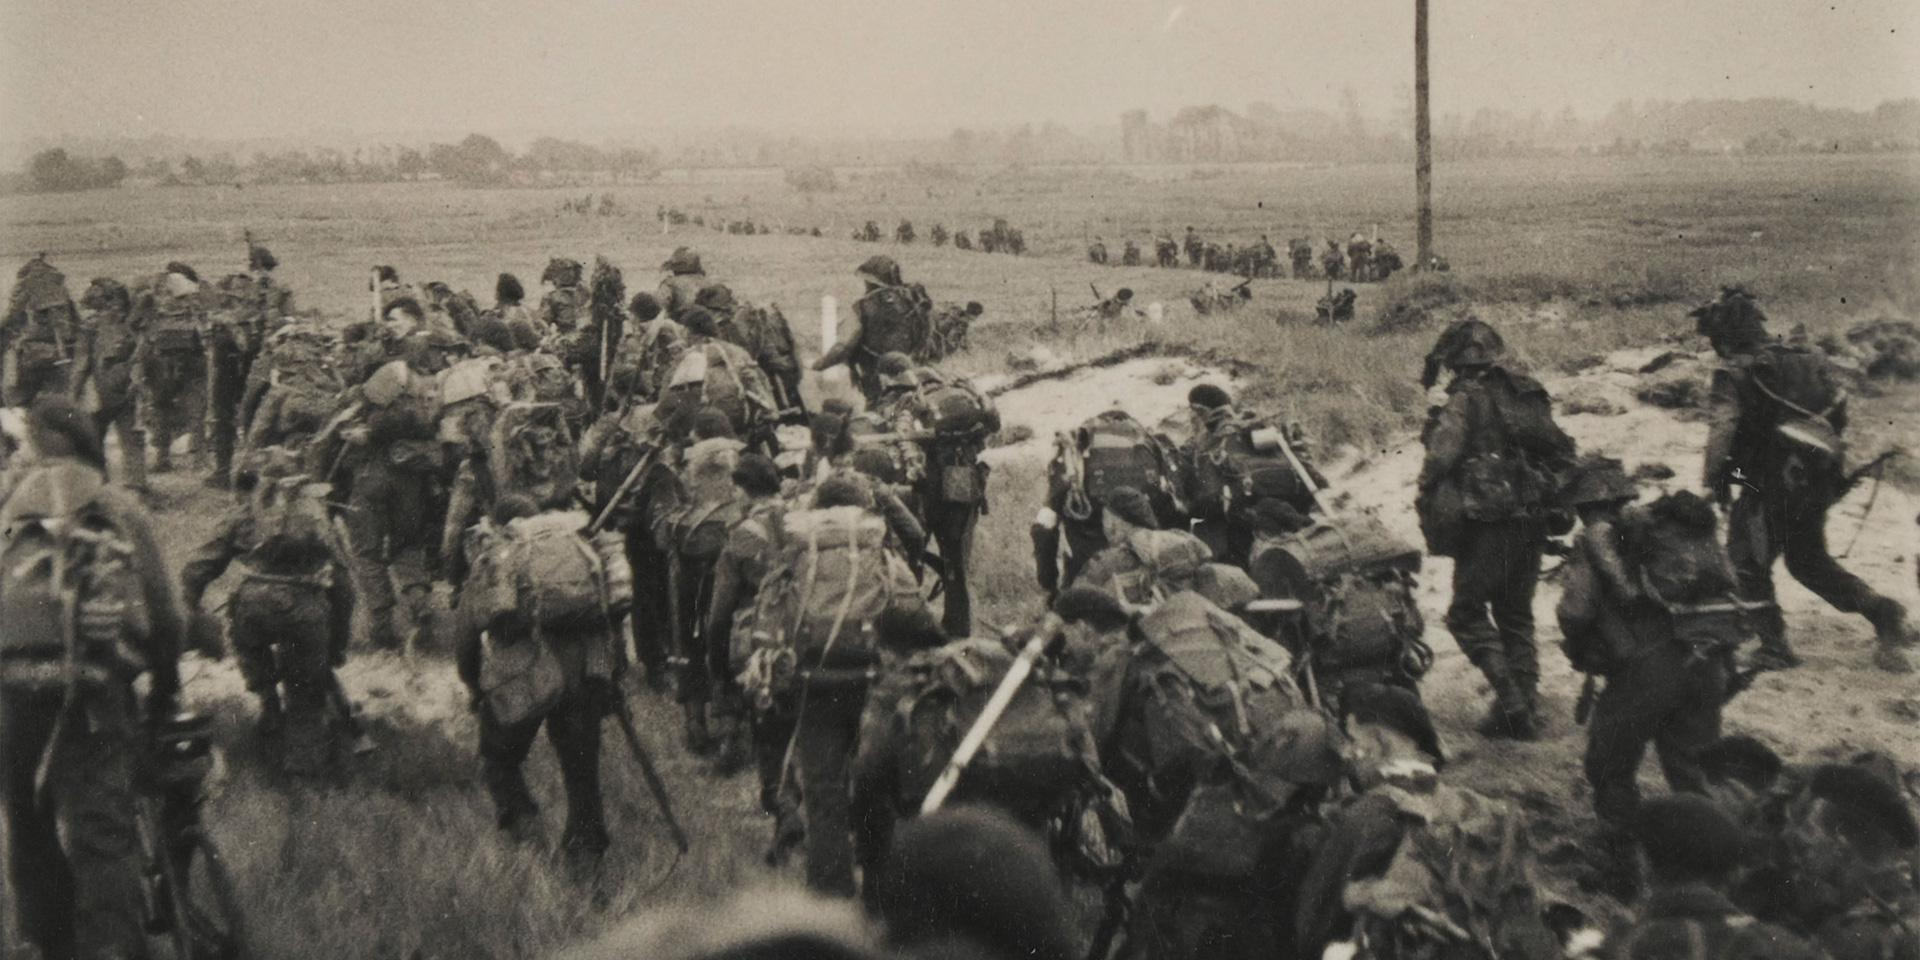 'Special Service troops fight their way inland from French beaches', June 1944